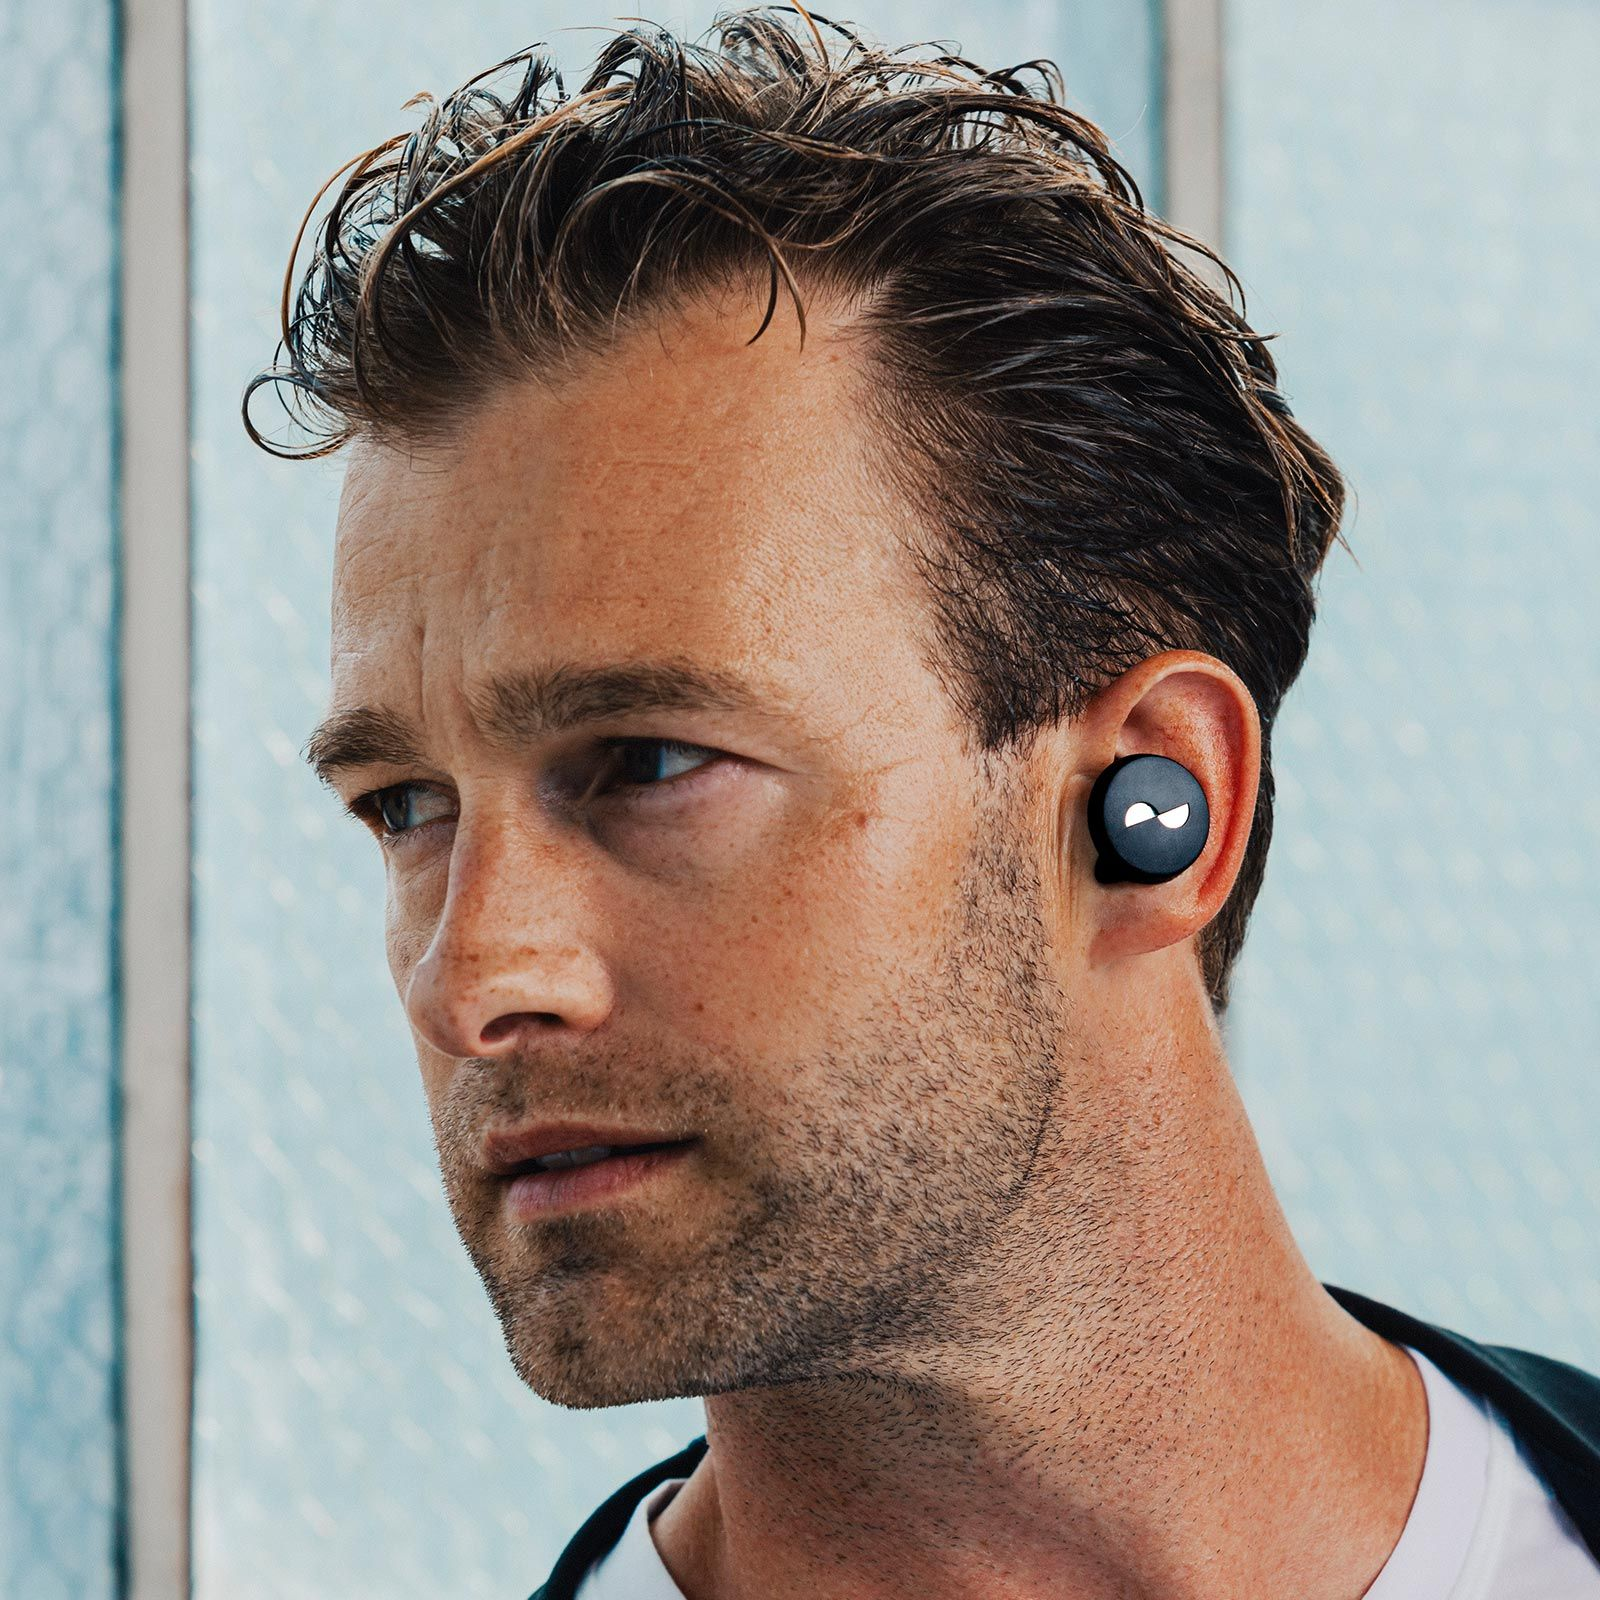 Person covered in sweat with NURATRUE earbuds in ears